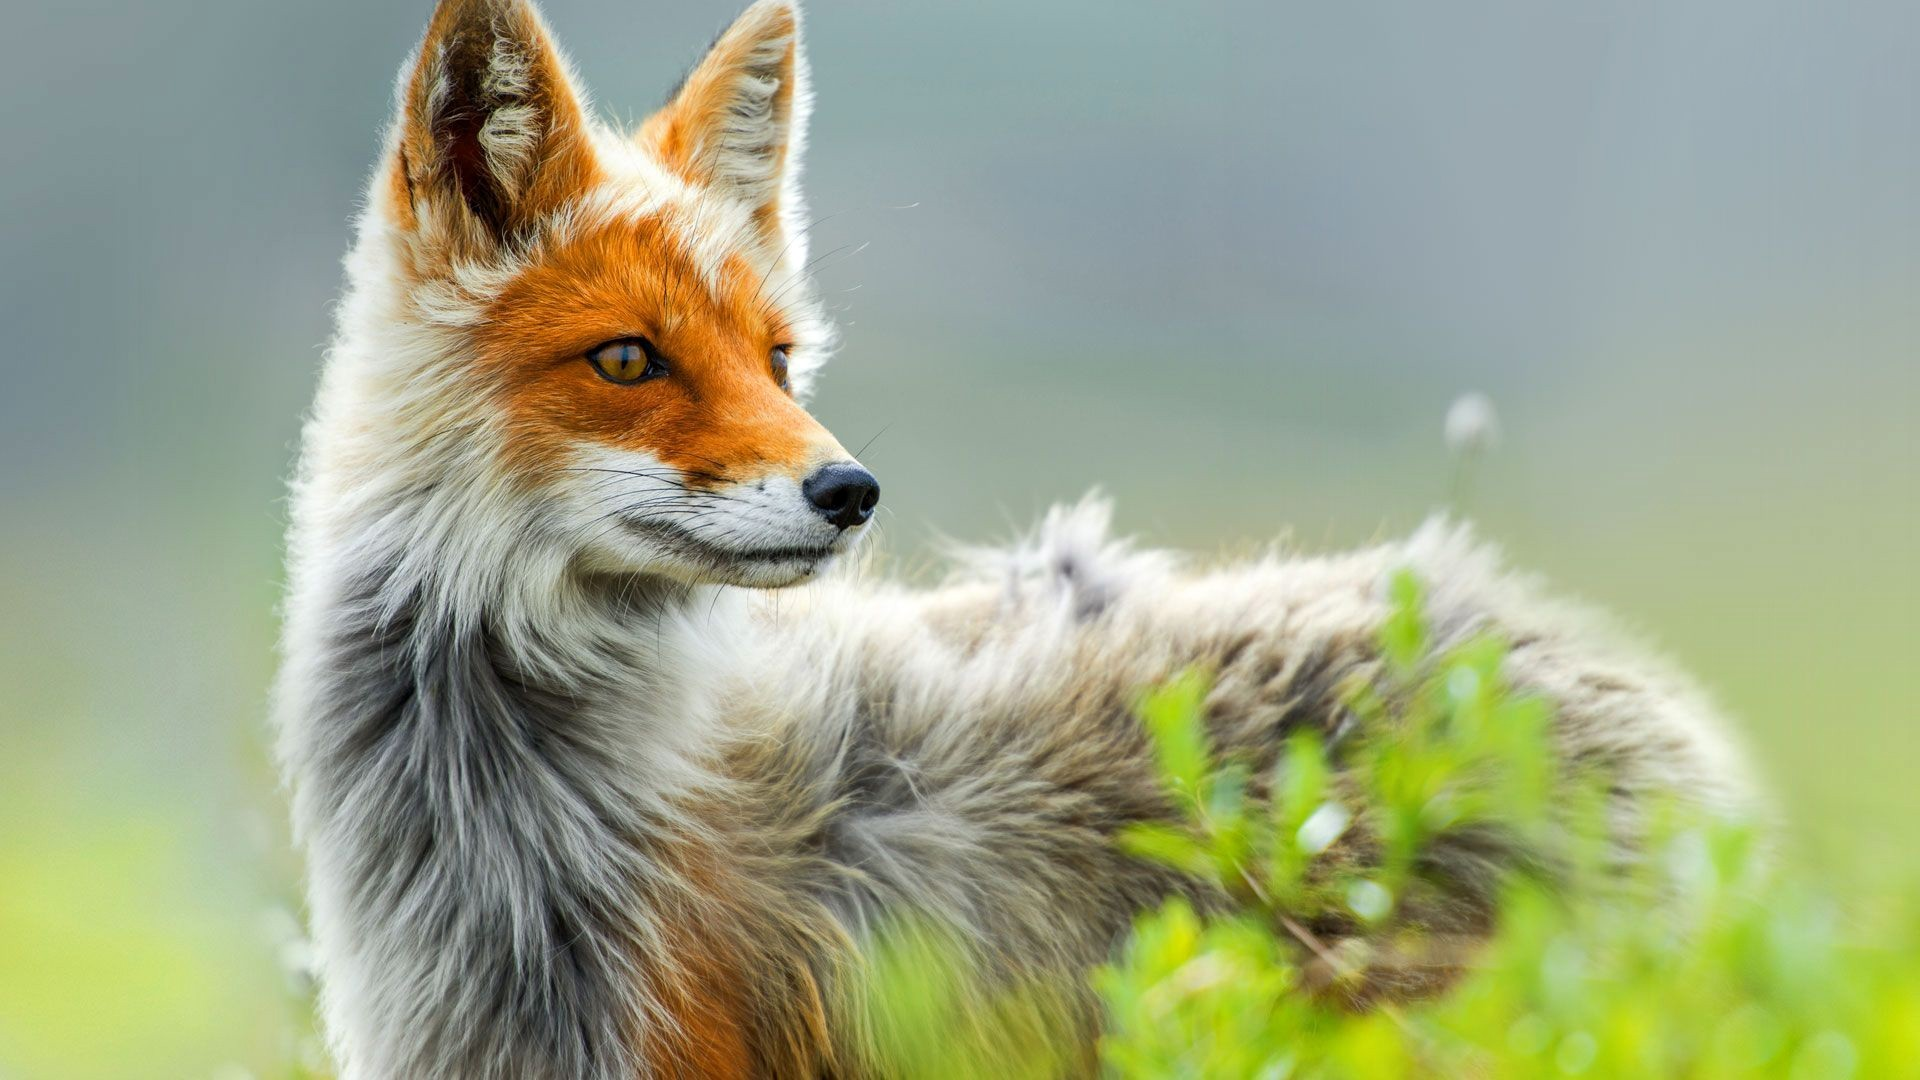 Fox hd wallpaper download